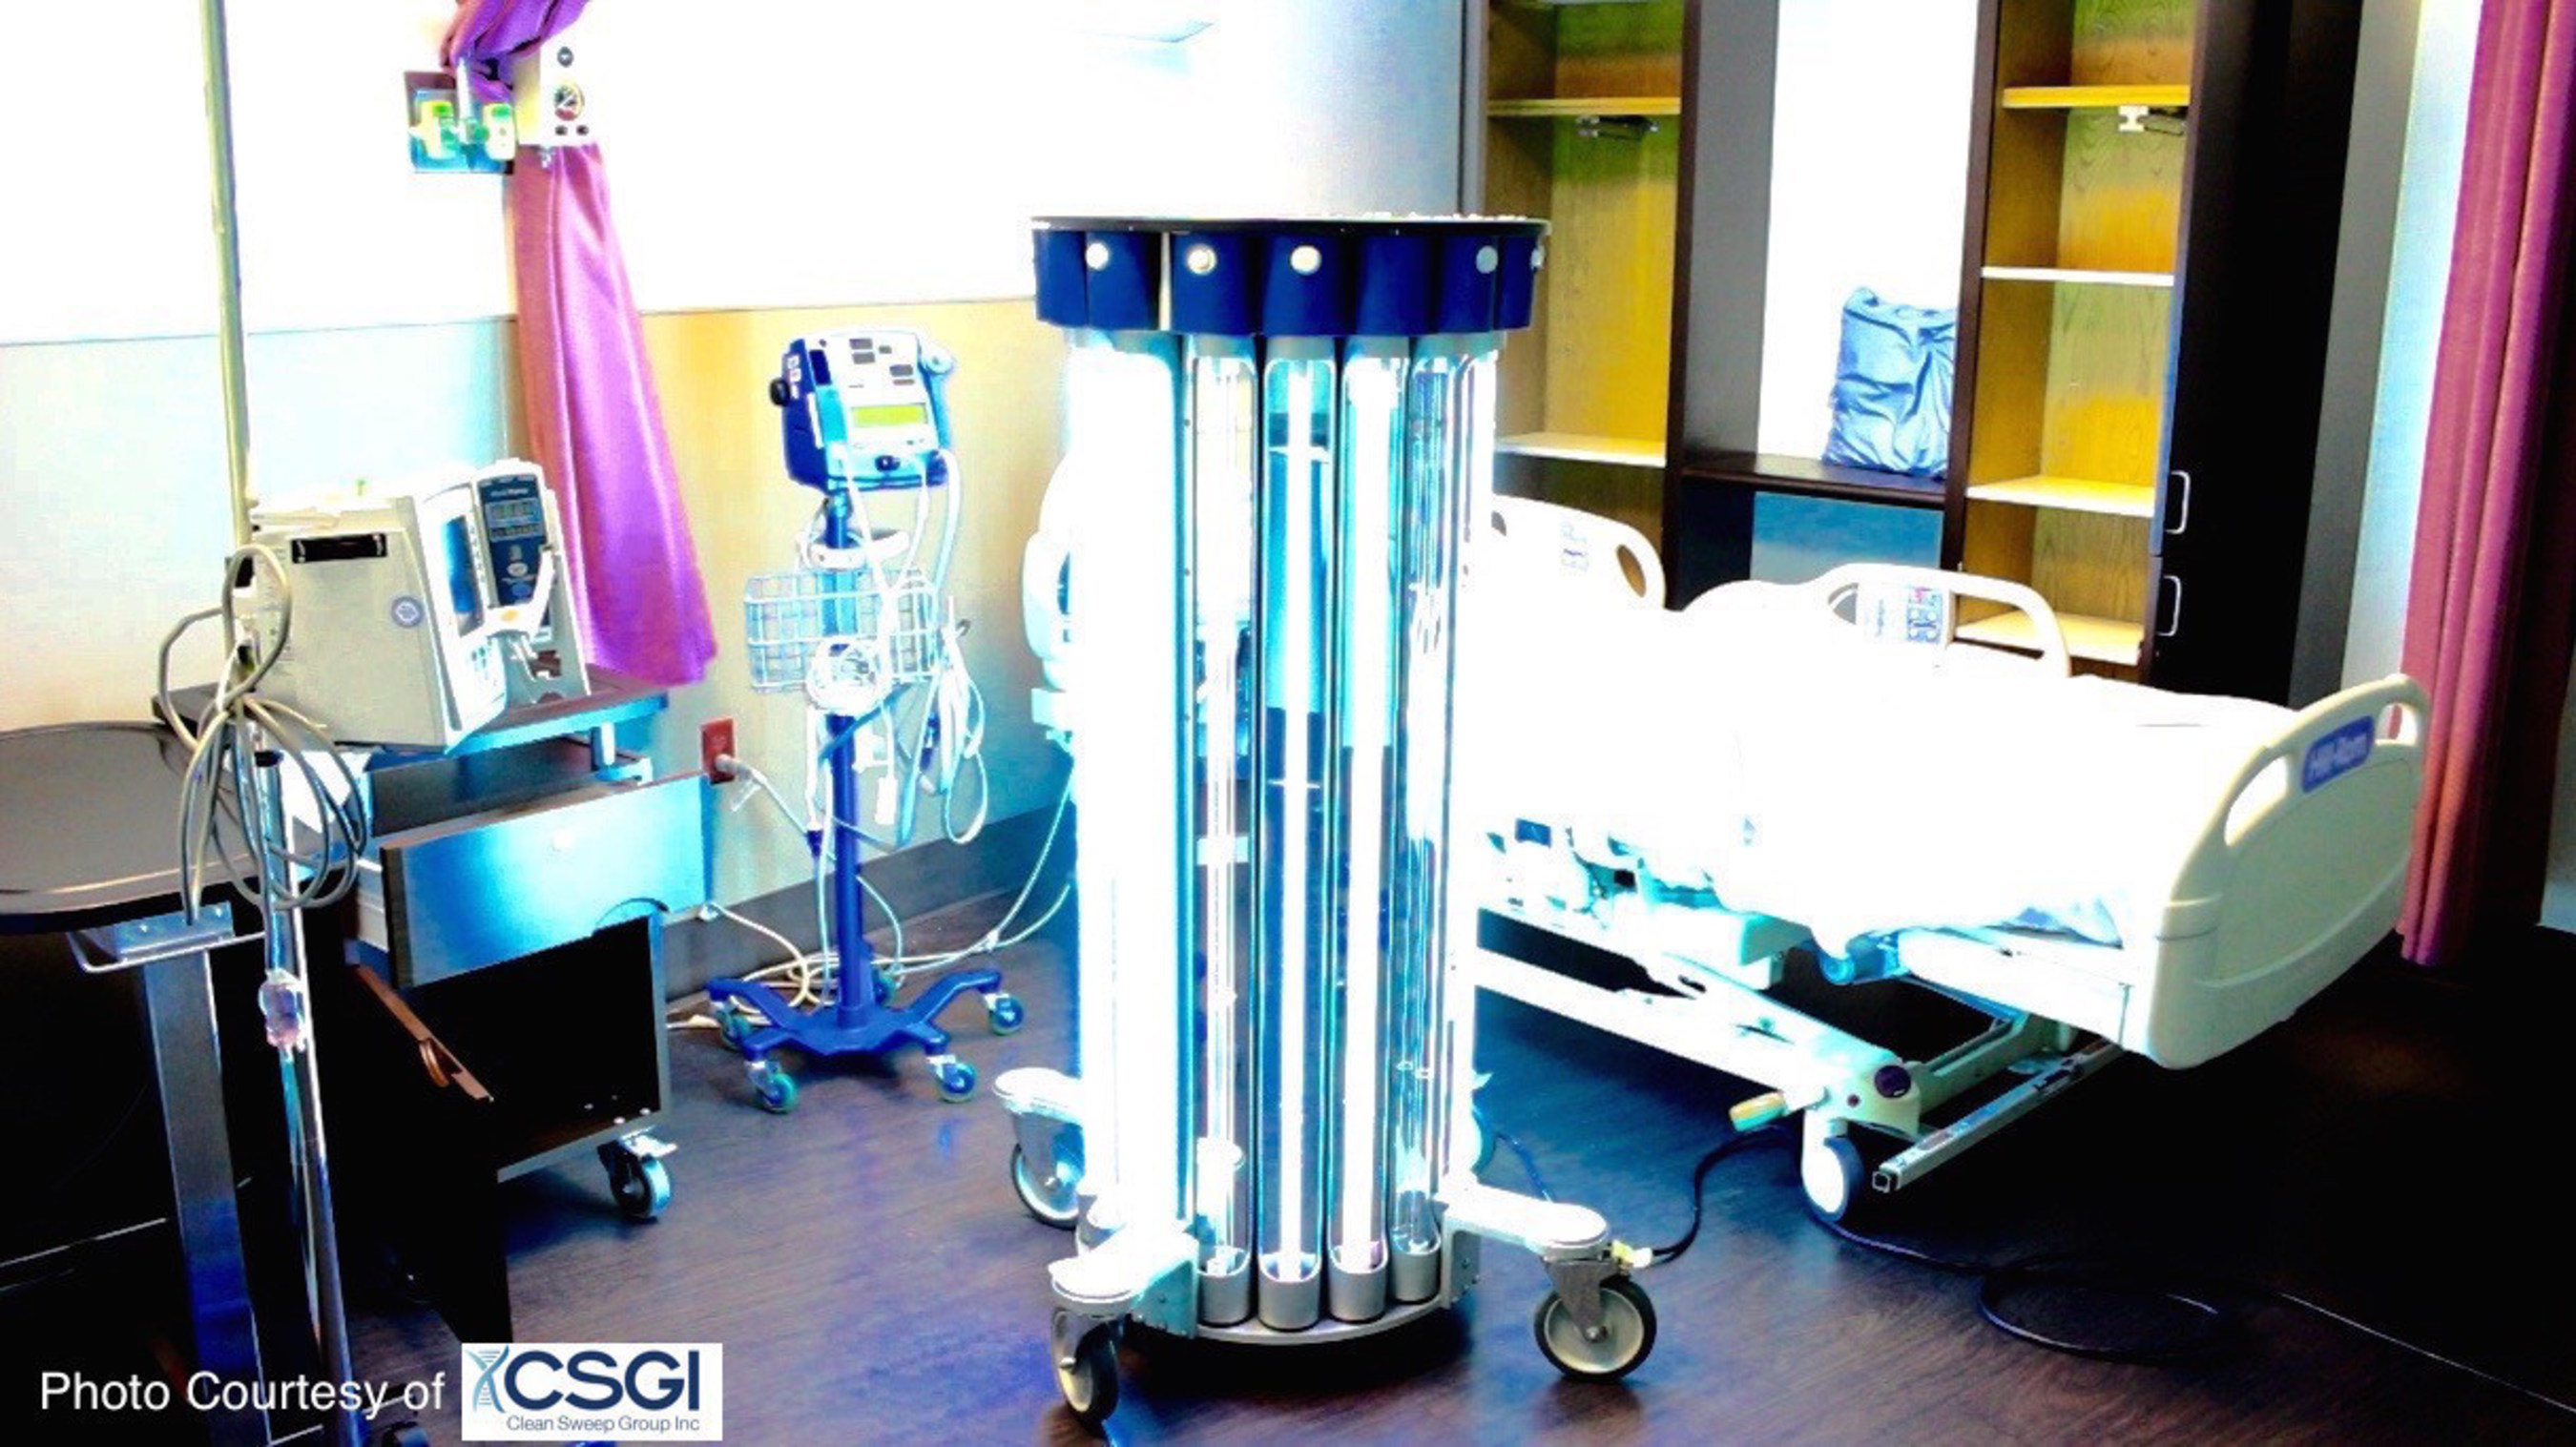 """The world's most powerful UV-C emitter at work killing harmful bacteria, viruses and spores in a patient's hospital room.  CSGI's service uses this technology and their proprietary risk management software to make any room 99.9999% """"germ free"""" for the next patient occupant."""